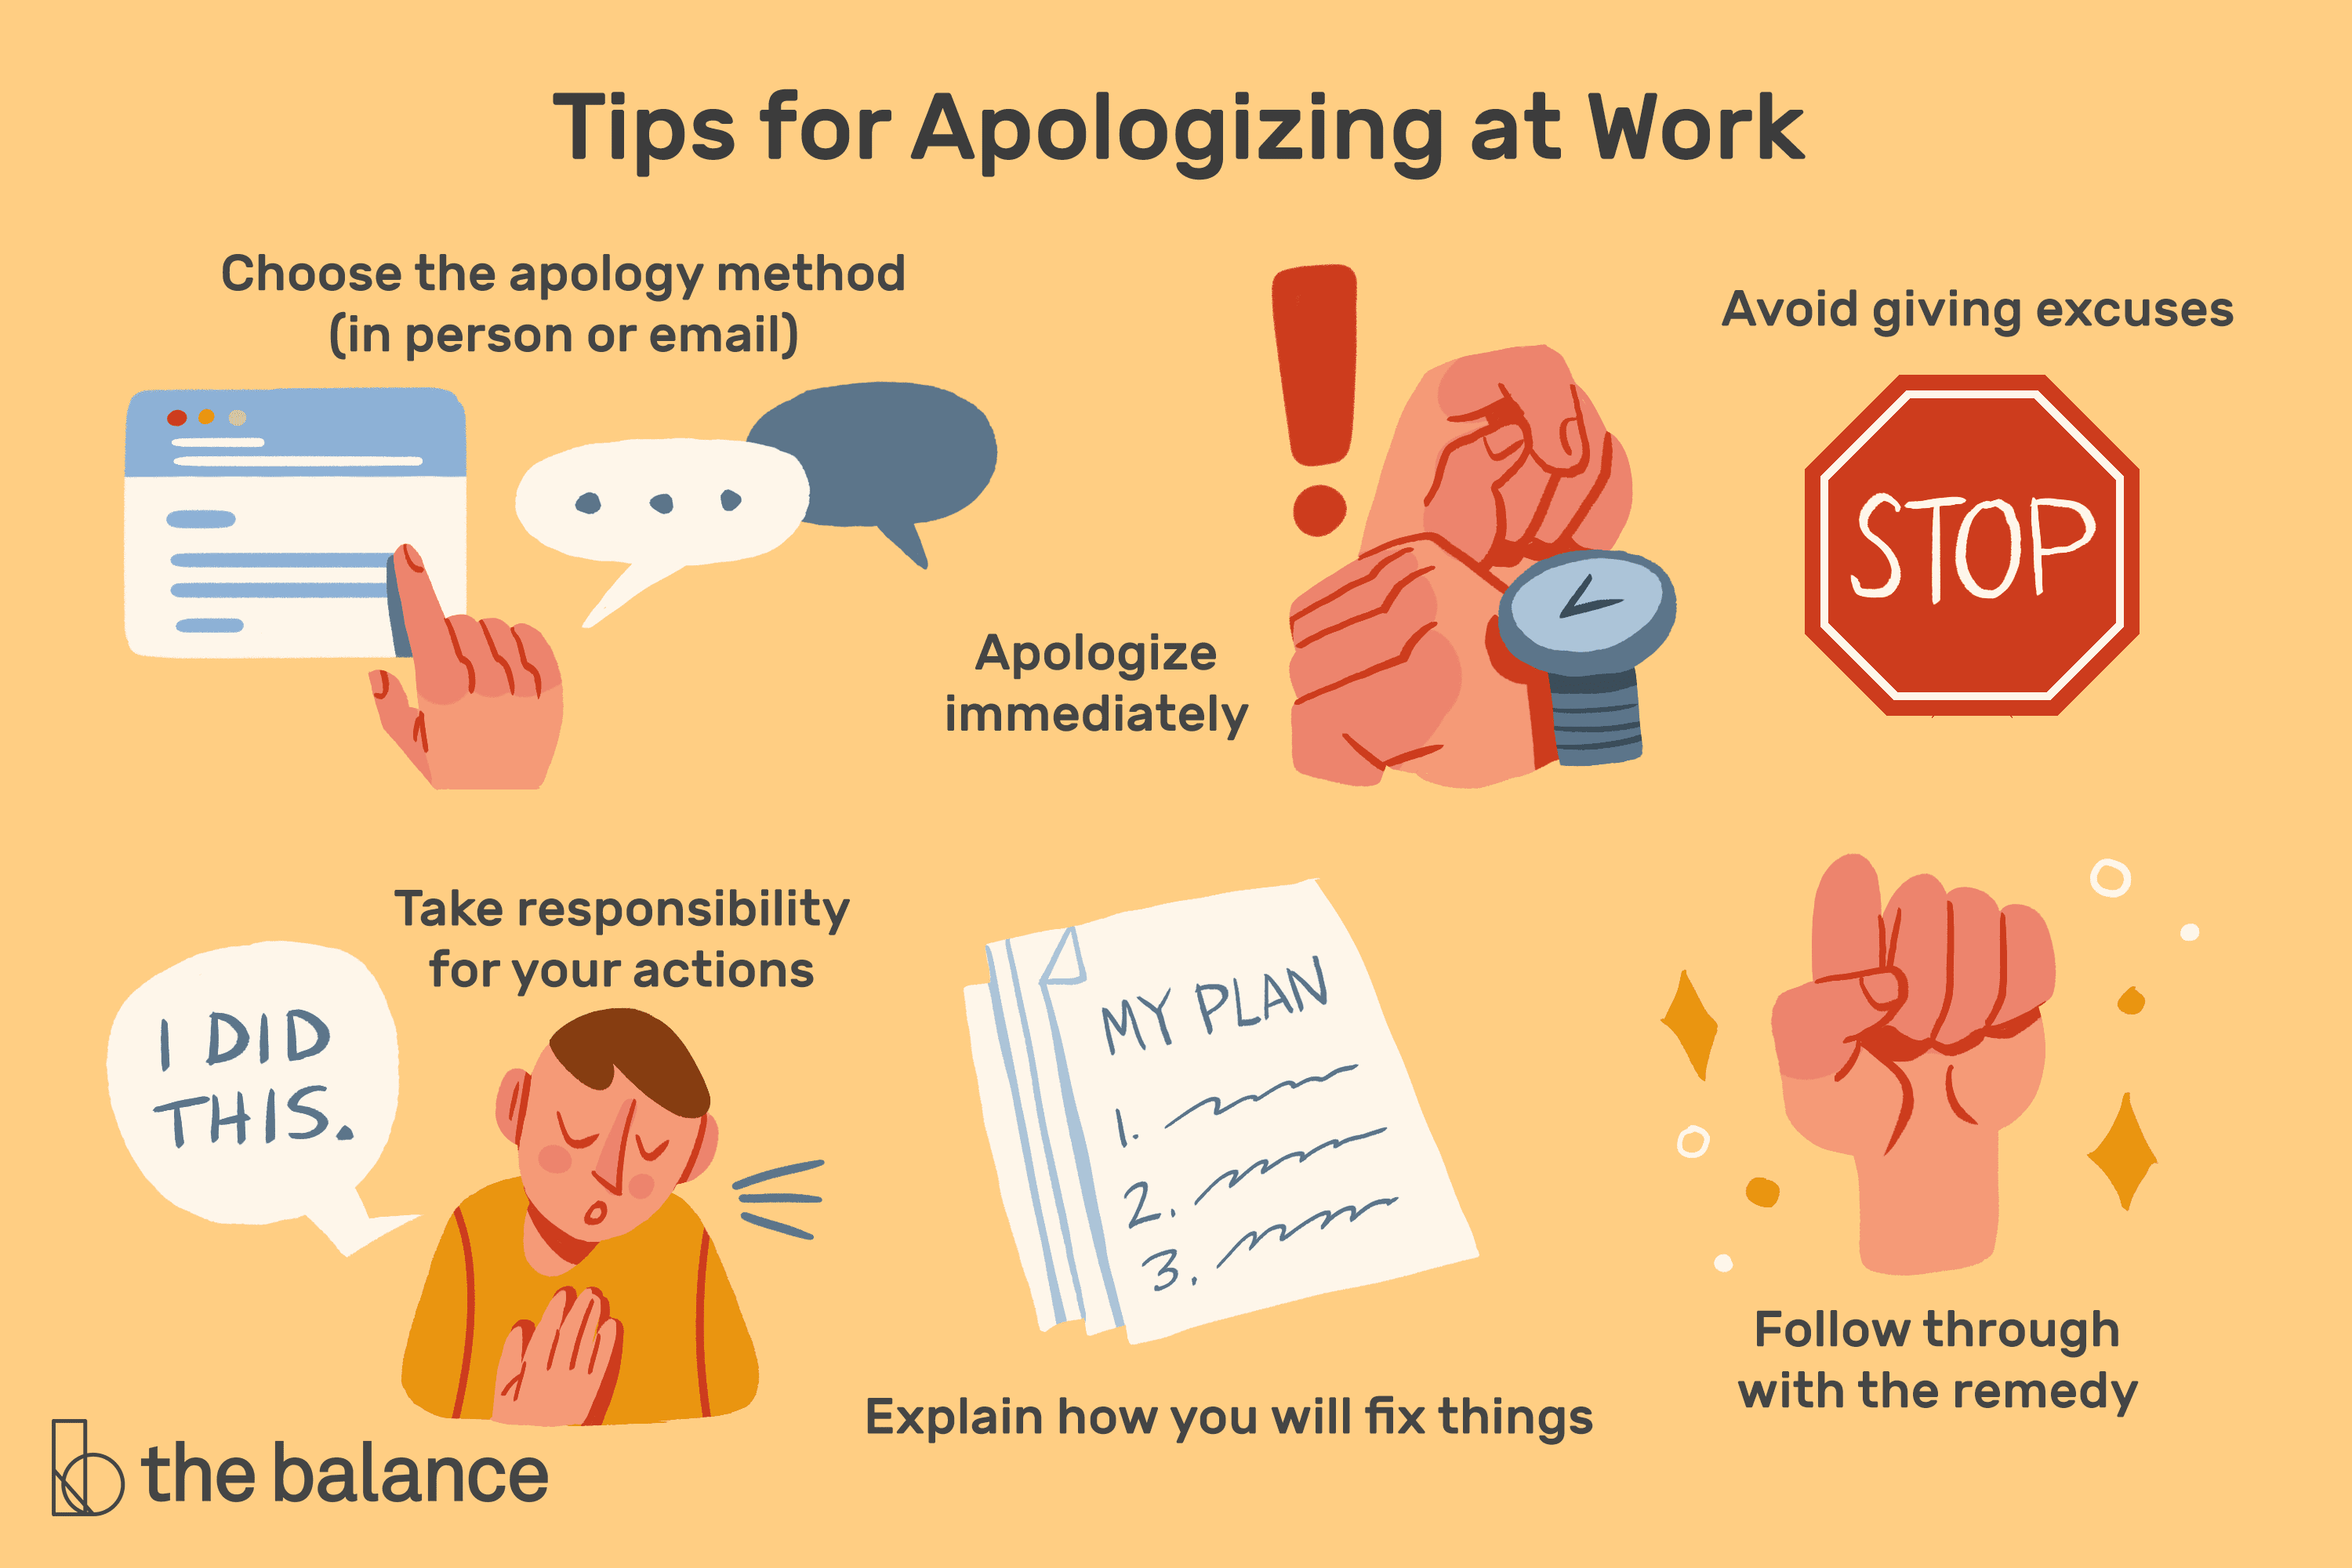 When and How to Apologize at Work